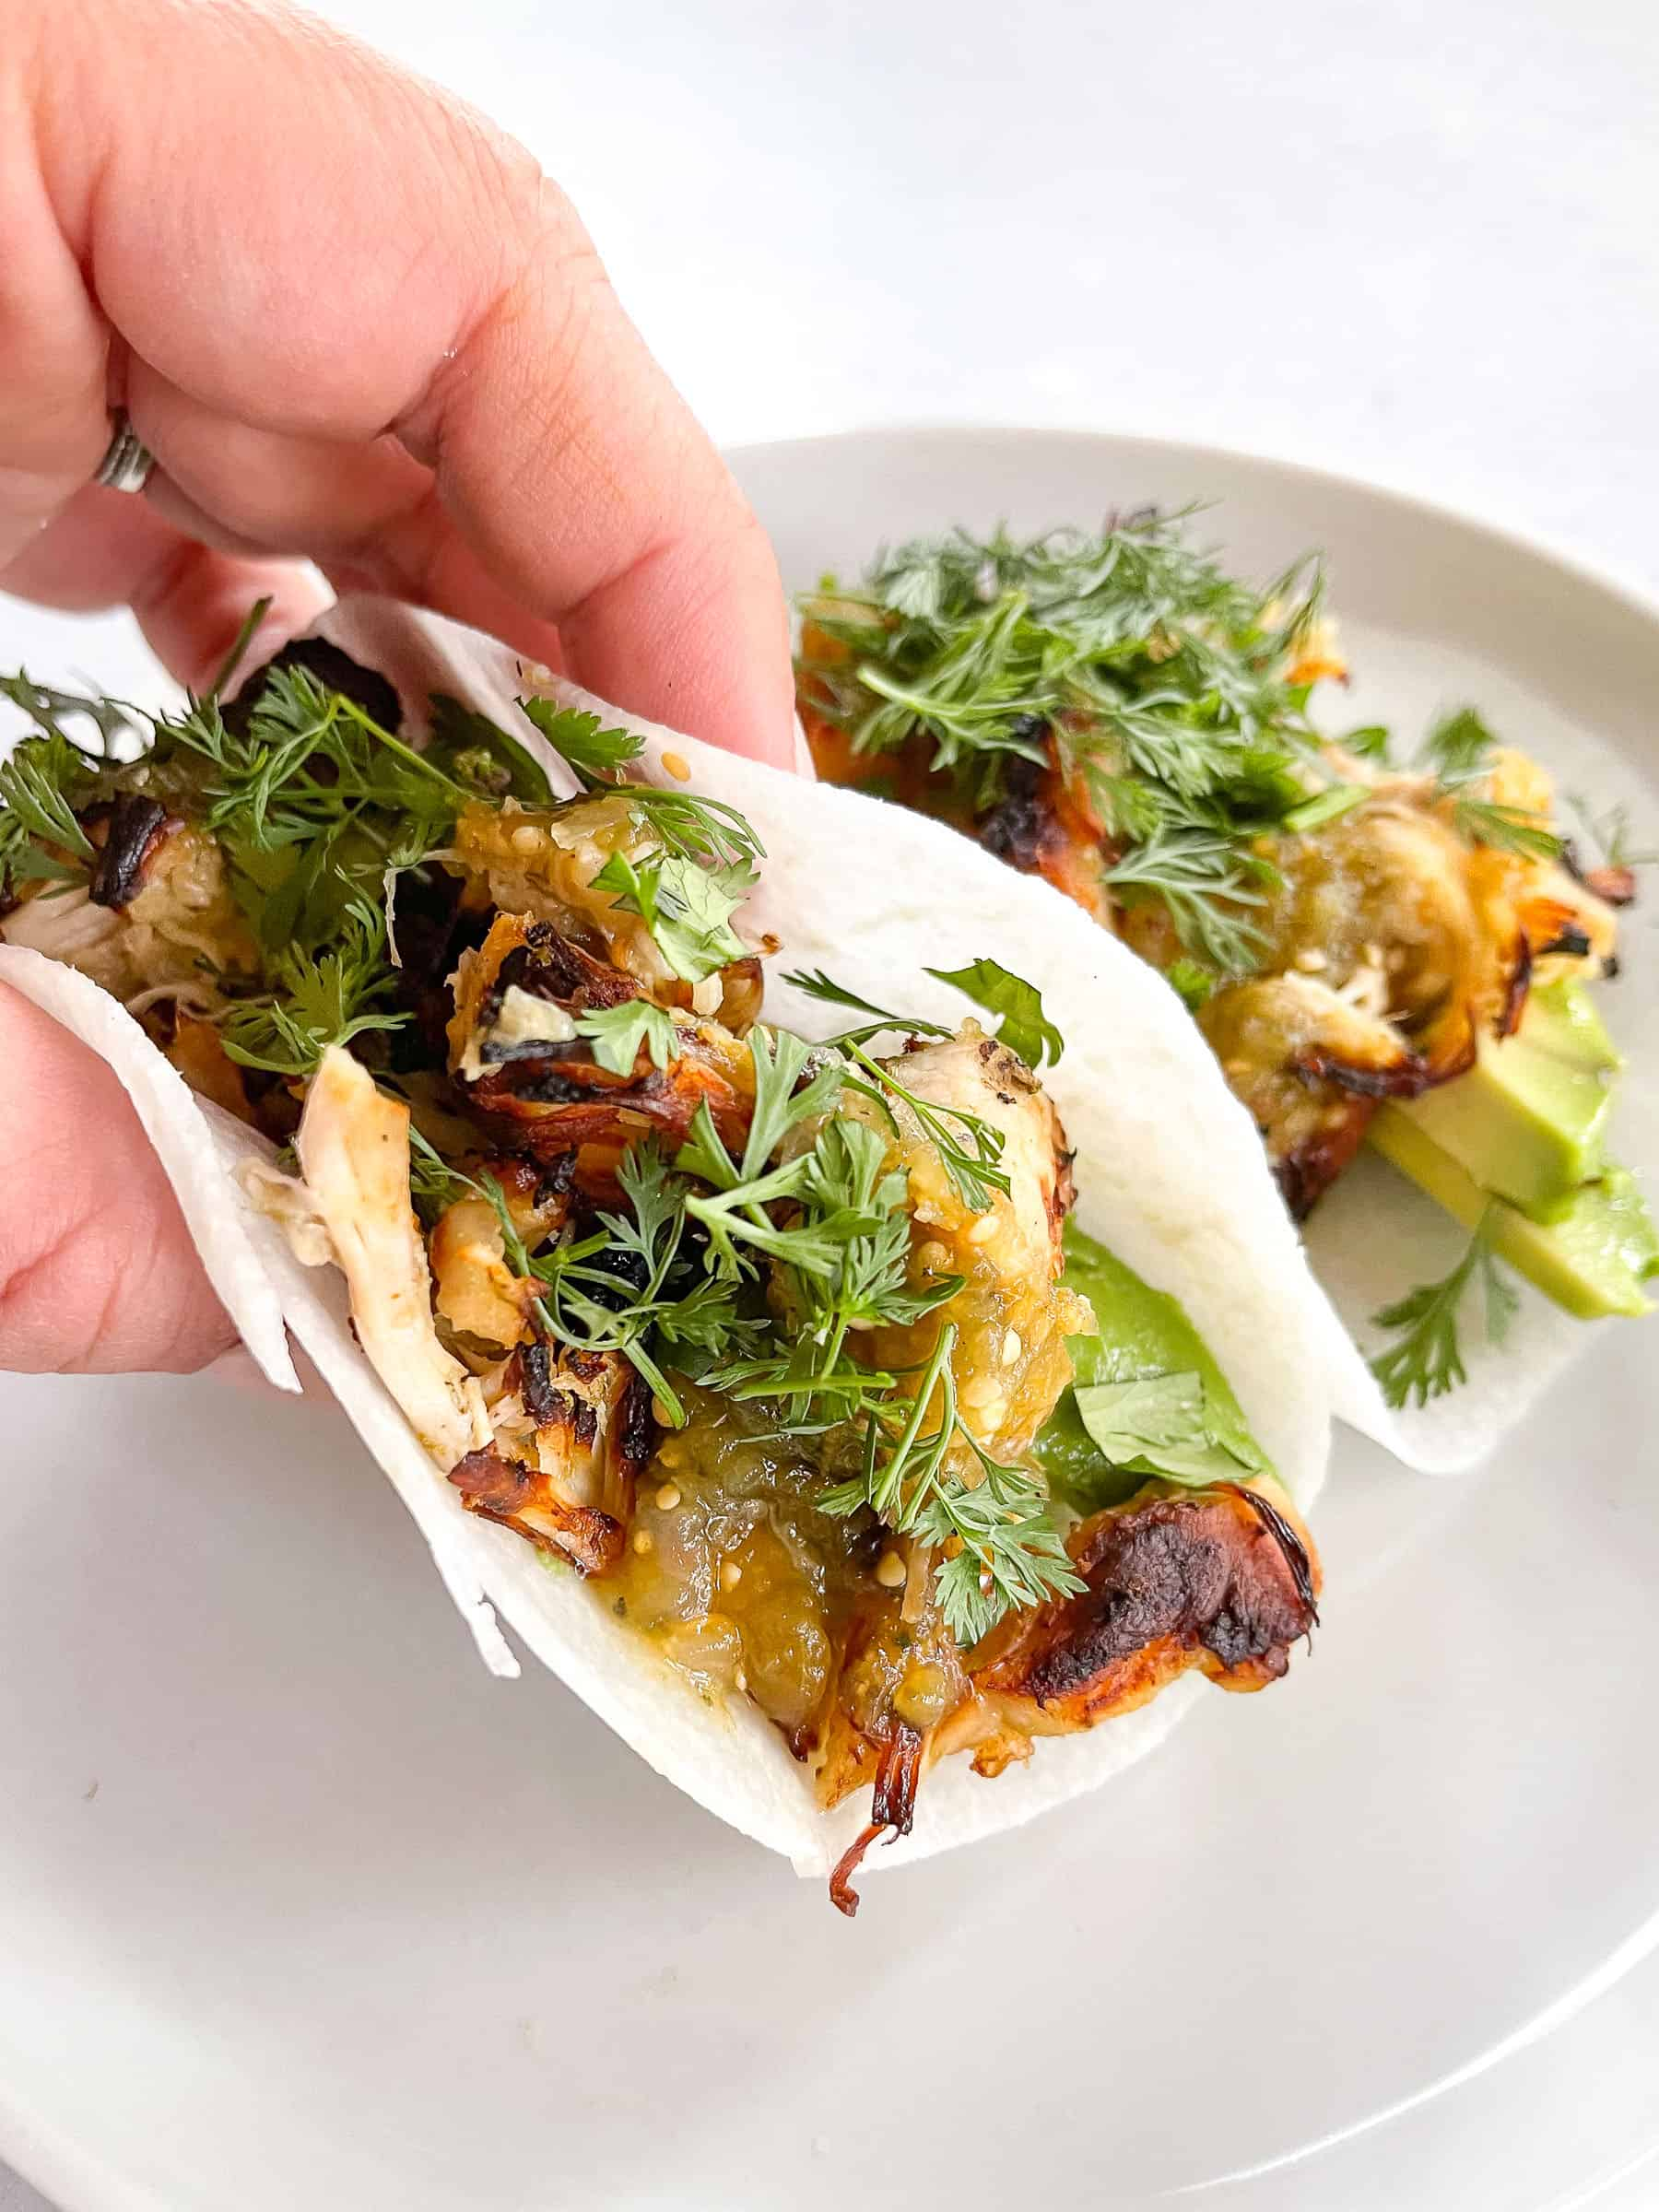 keto crispy verde chicken tacos on jicama wrap with cilantro on a white plate with a white background